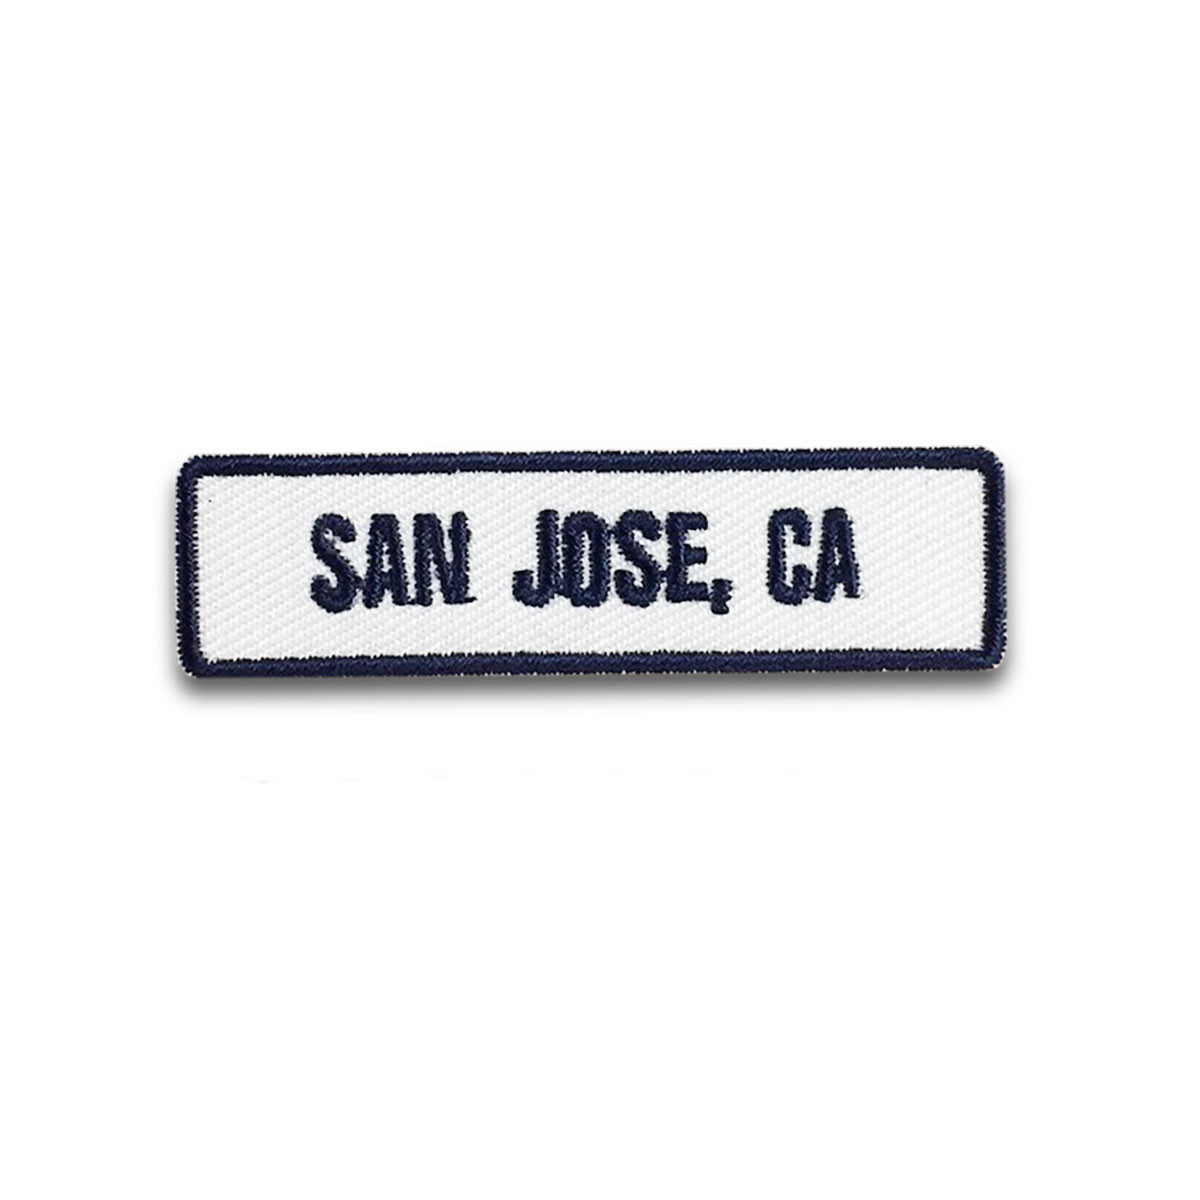 San Jose, CA Rocker Patch